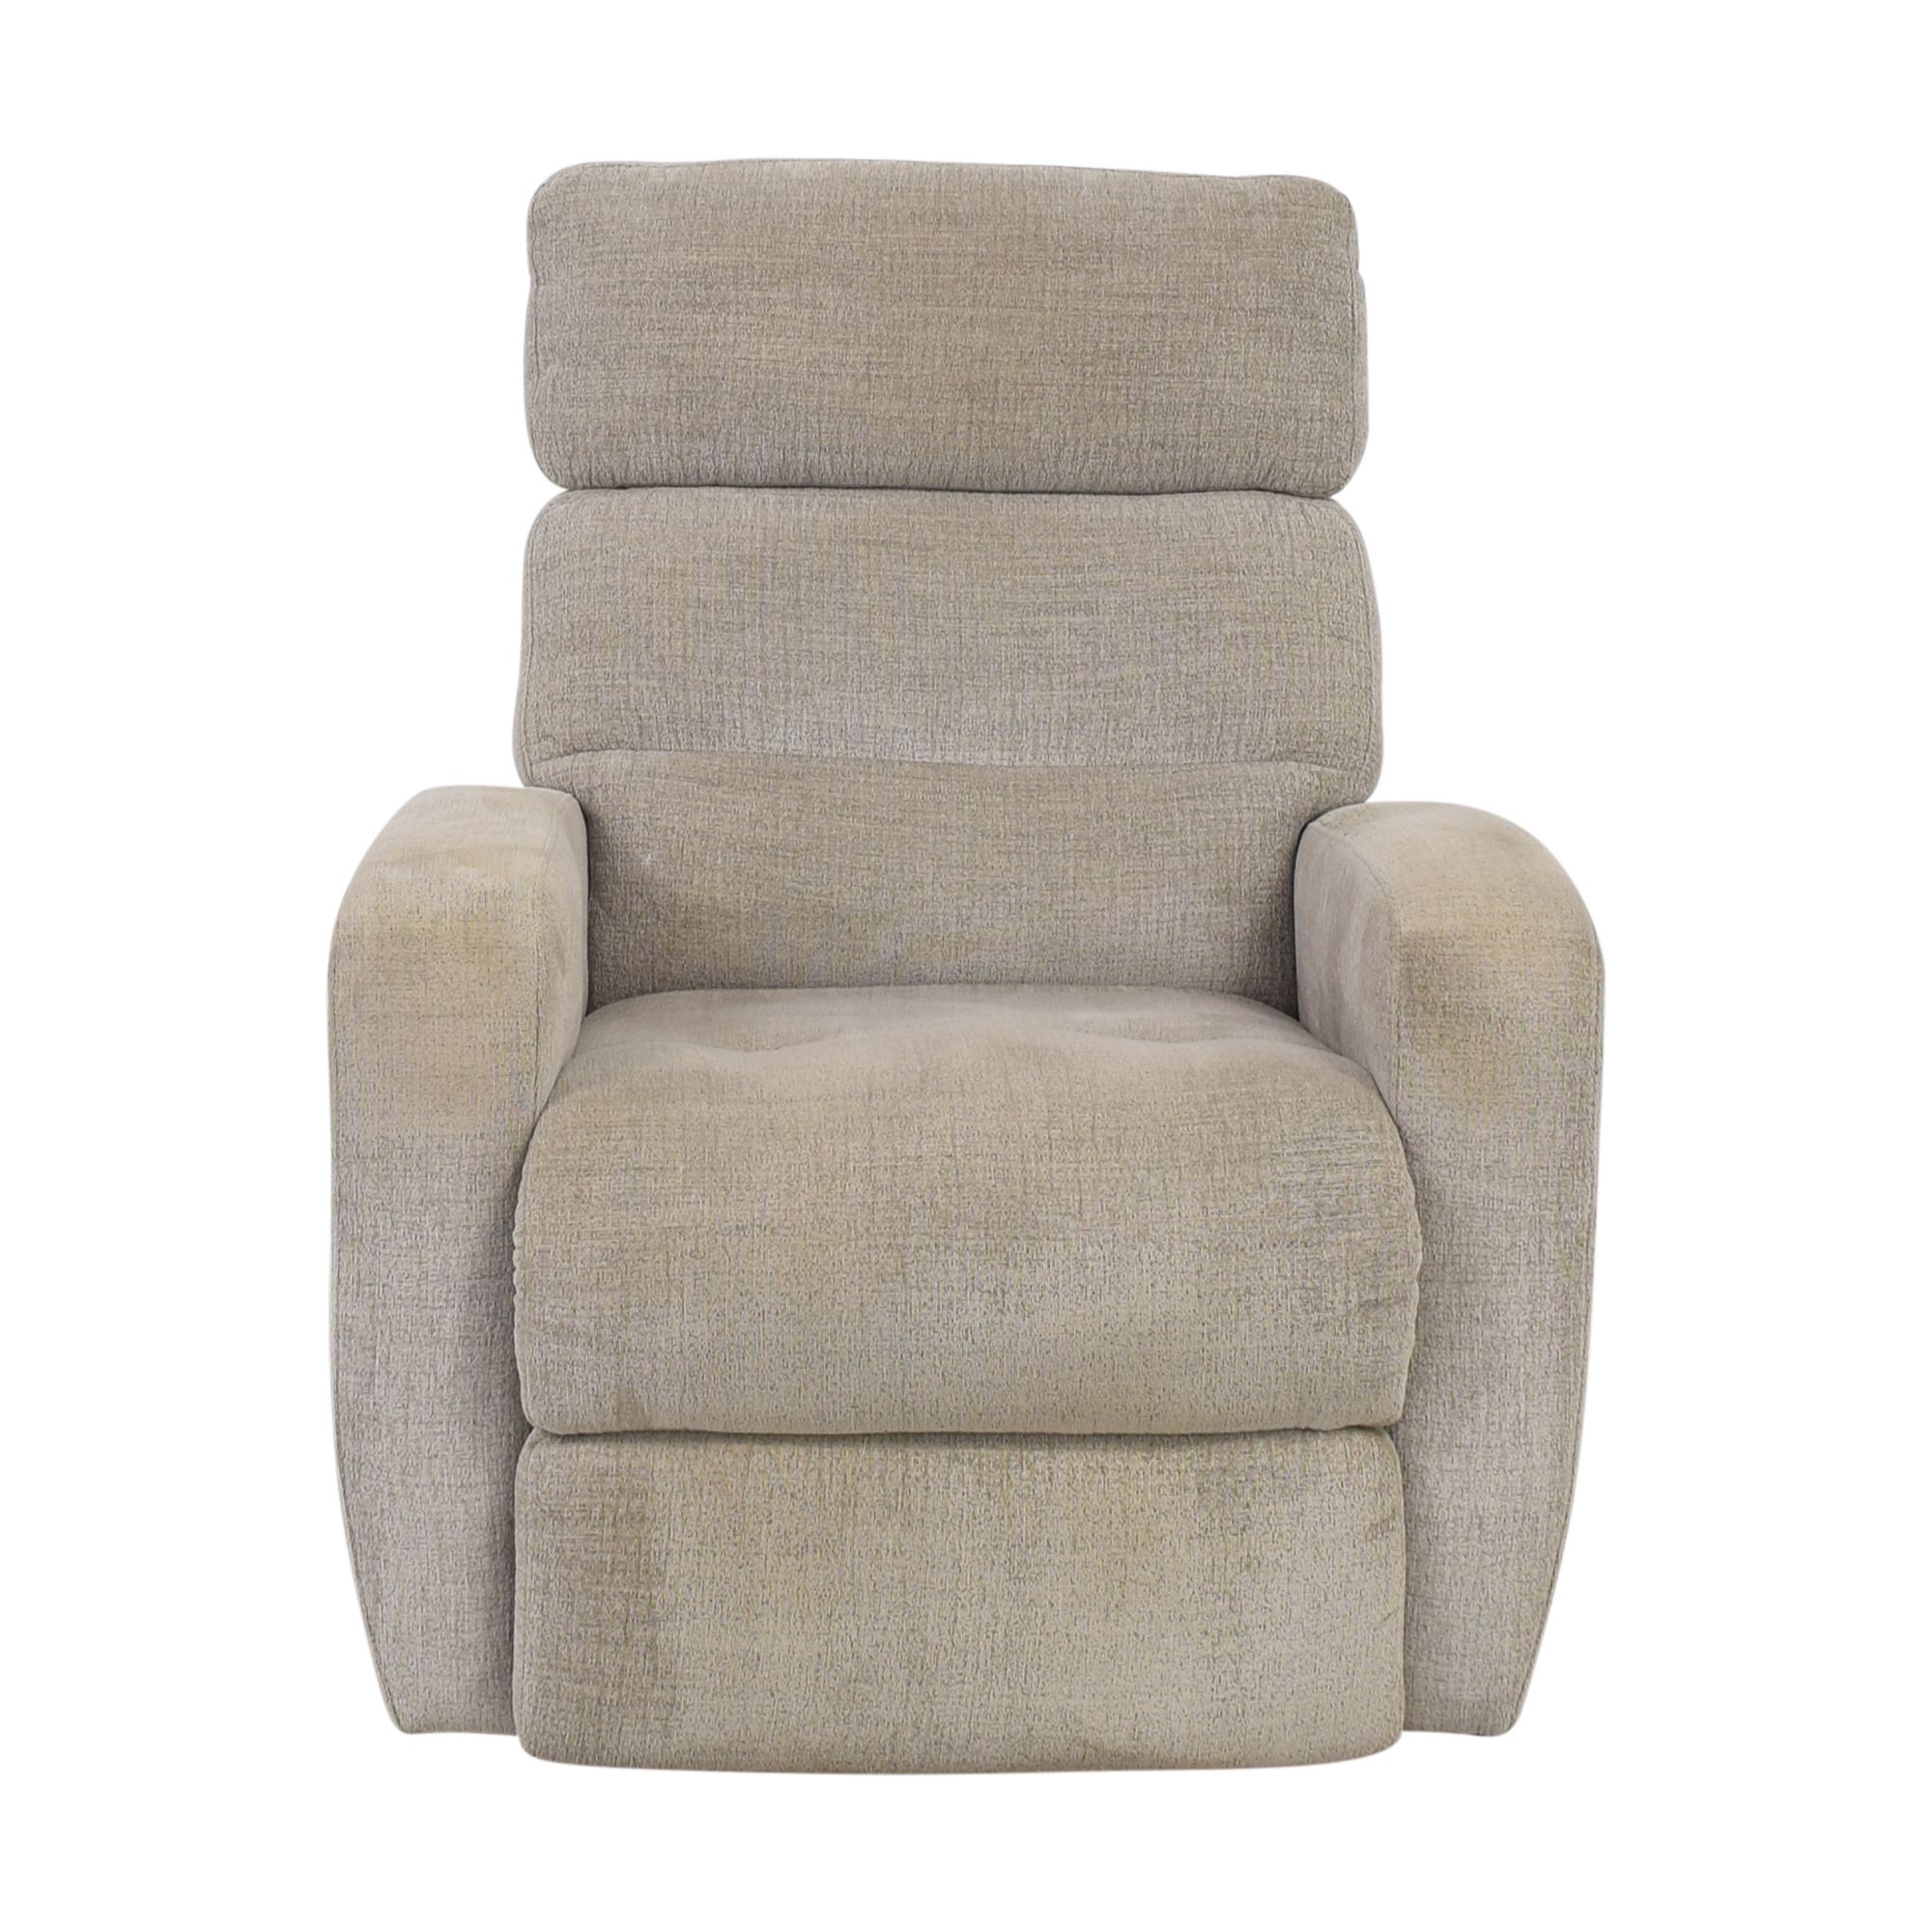 Macy's Macy's Stellarae Fabric Power Recliner second hand